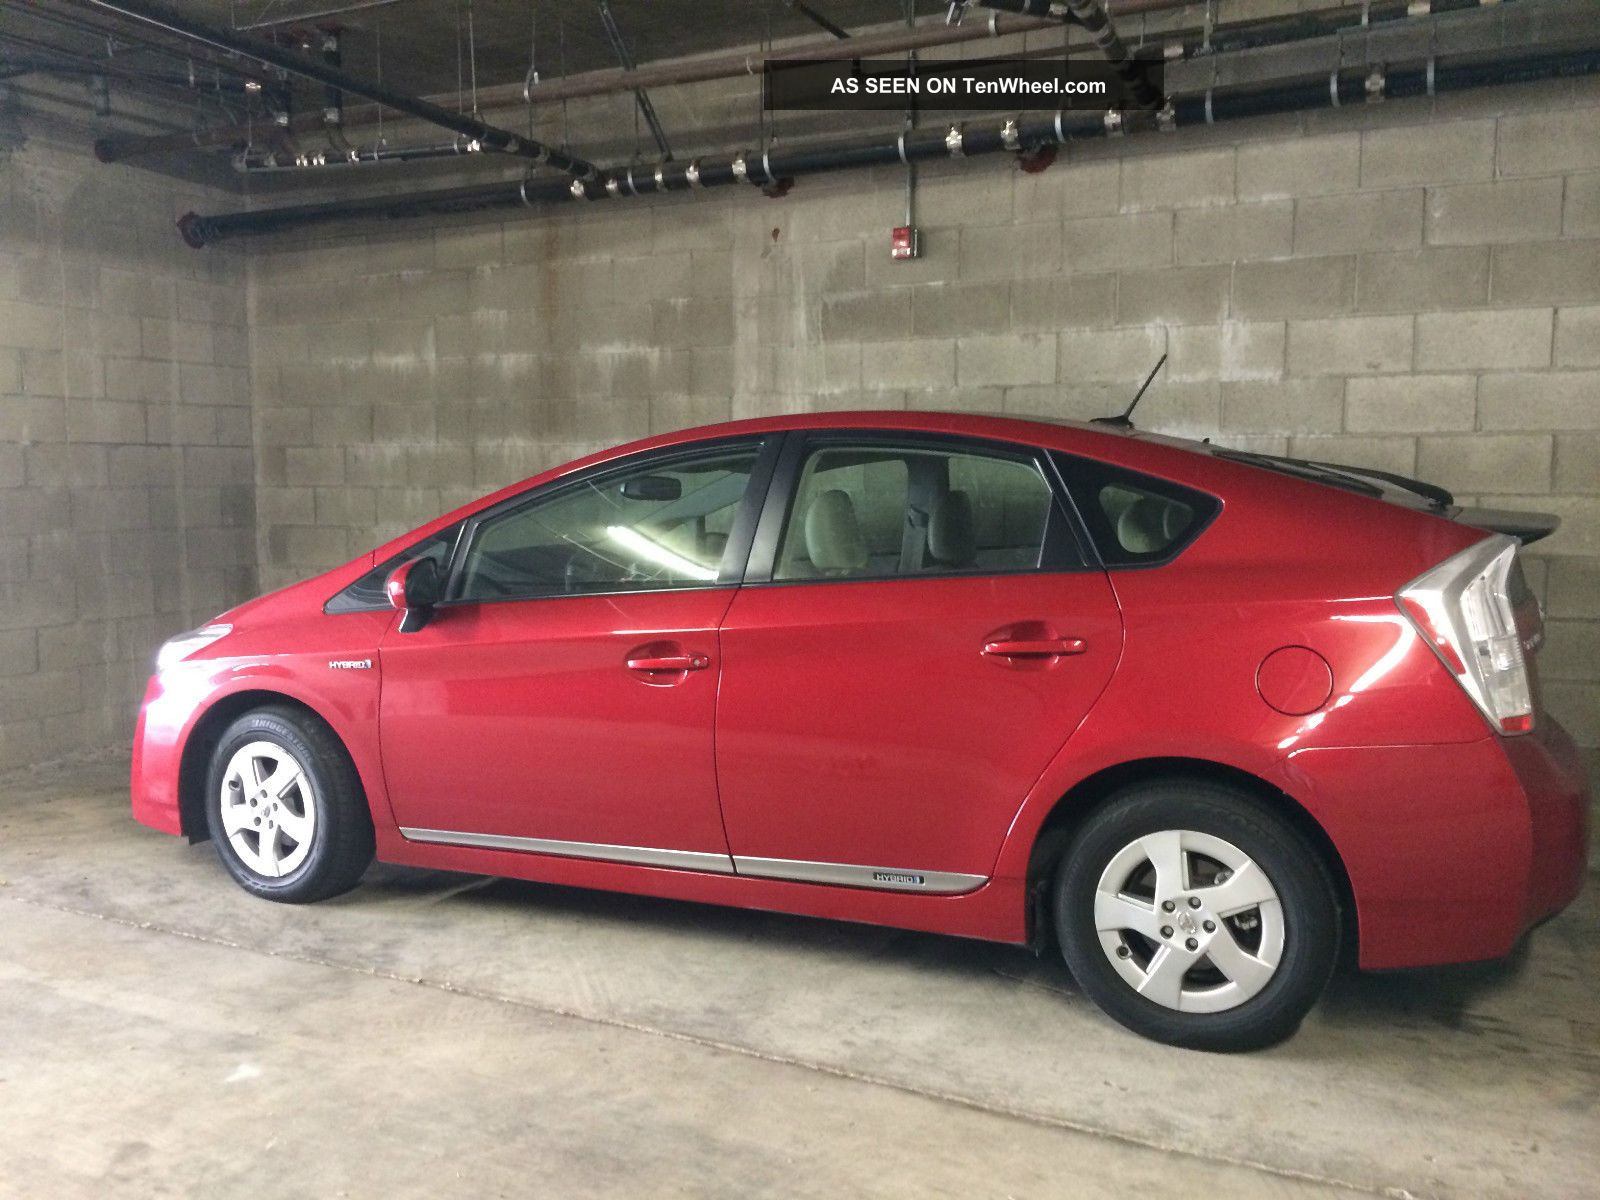 2010 Gorgeous 5dr Hb Red Prius Iv - - Luxury / Solar Panel Moon Roof Prius photo